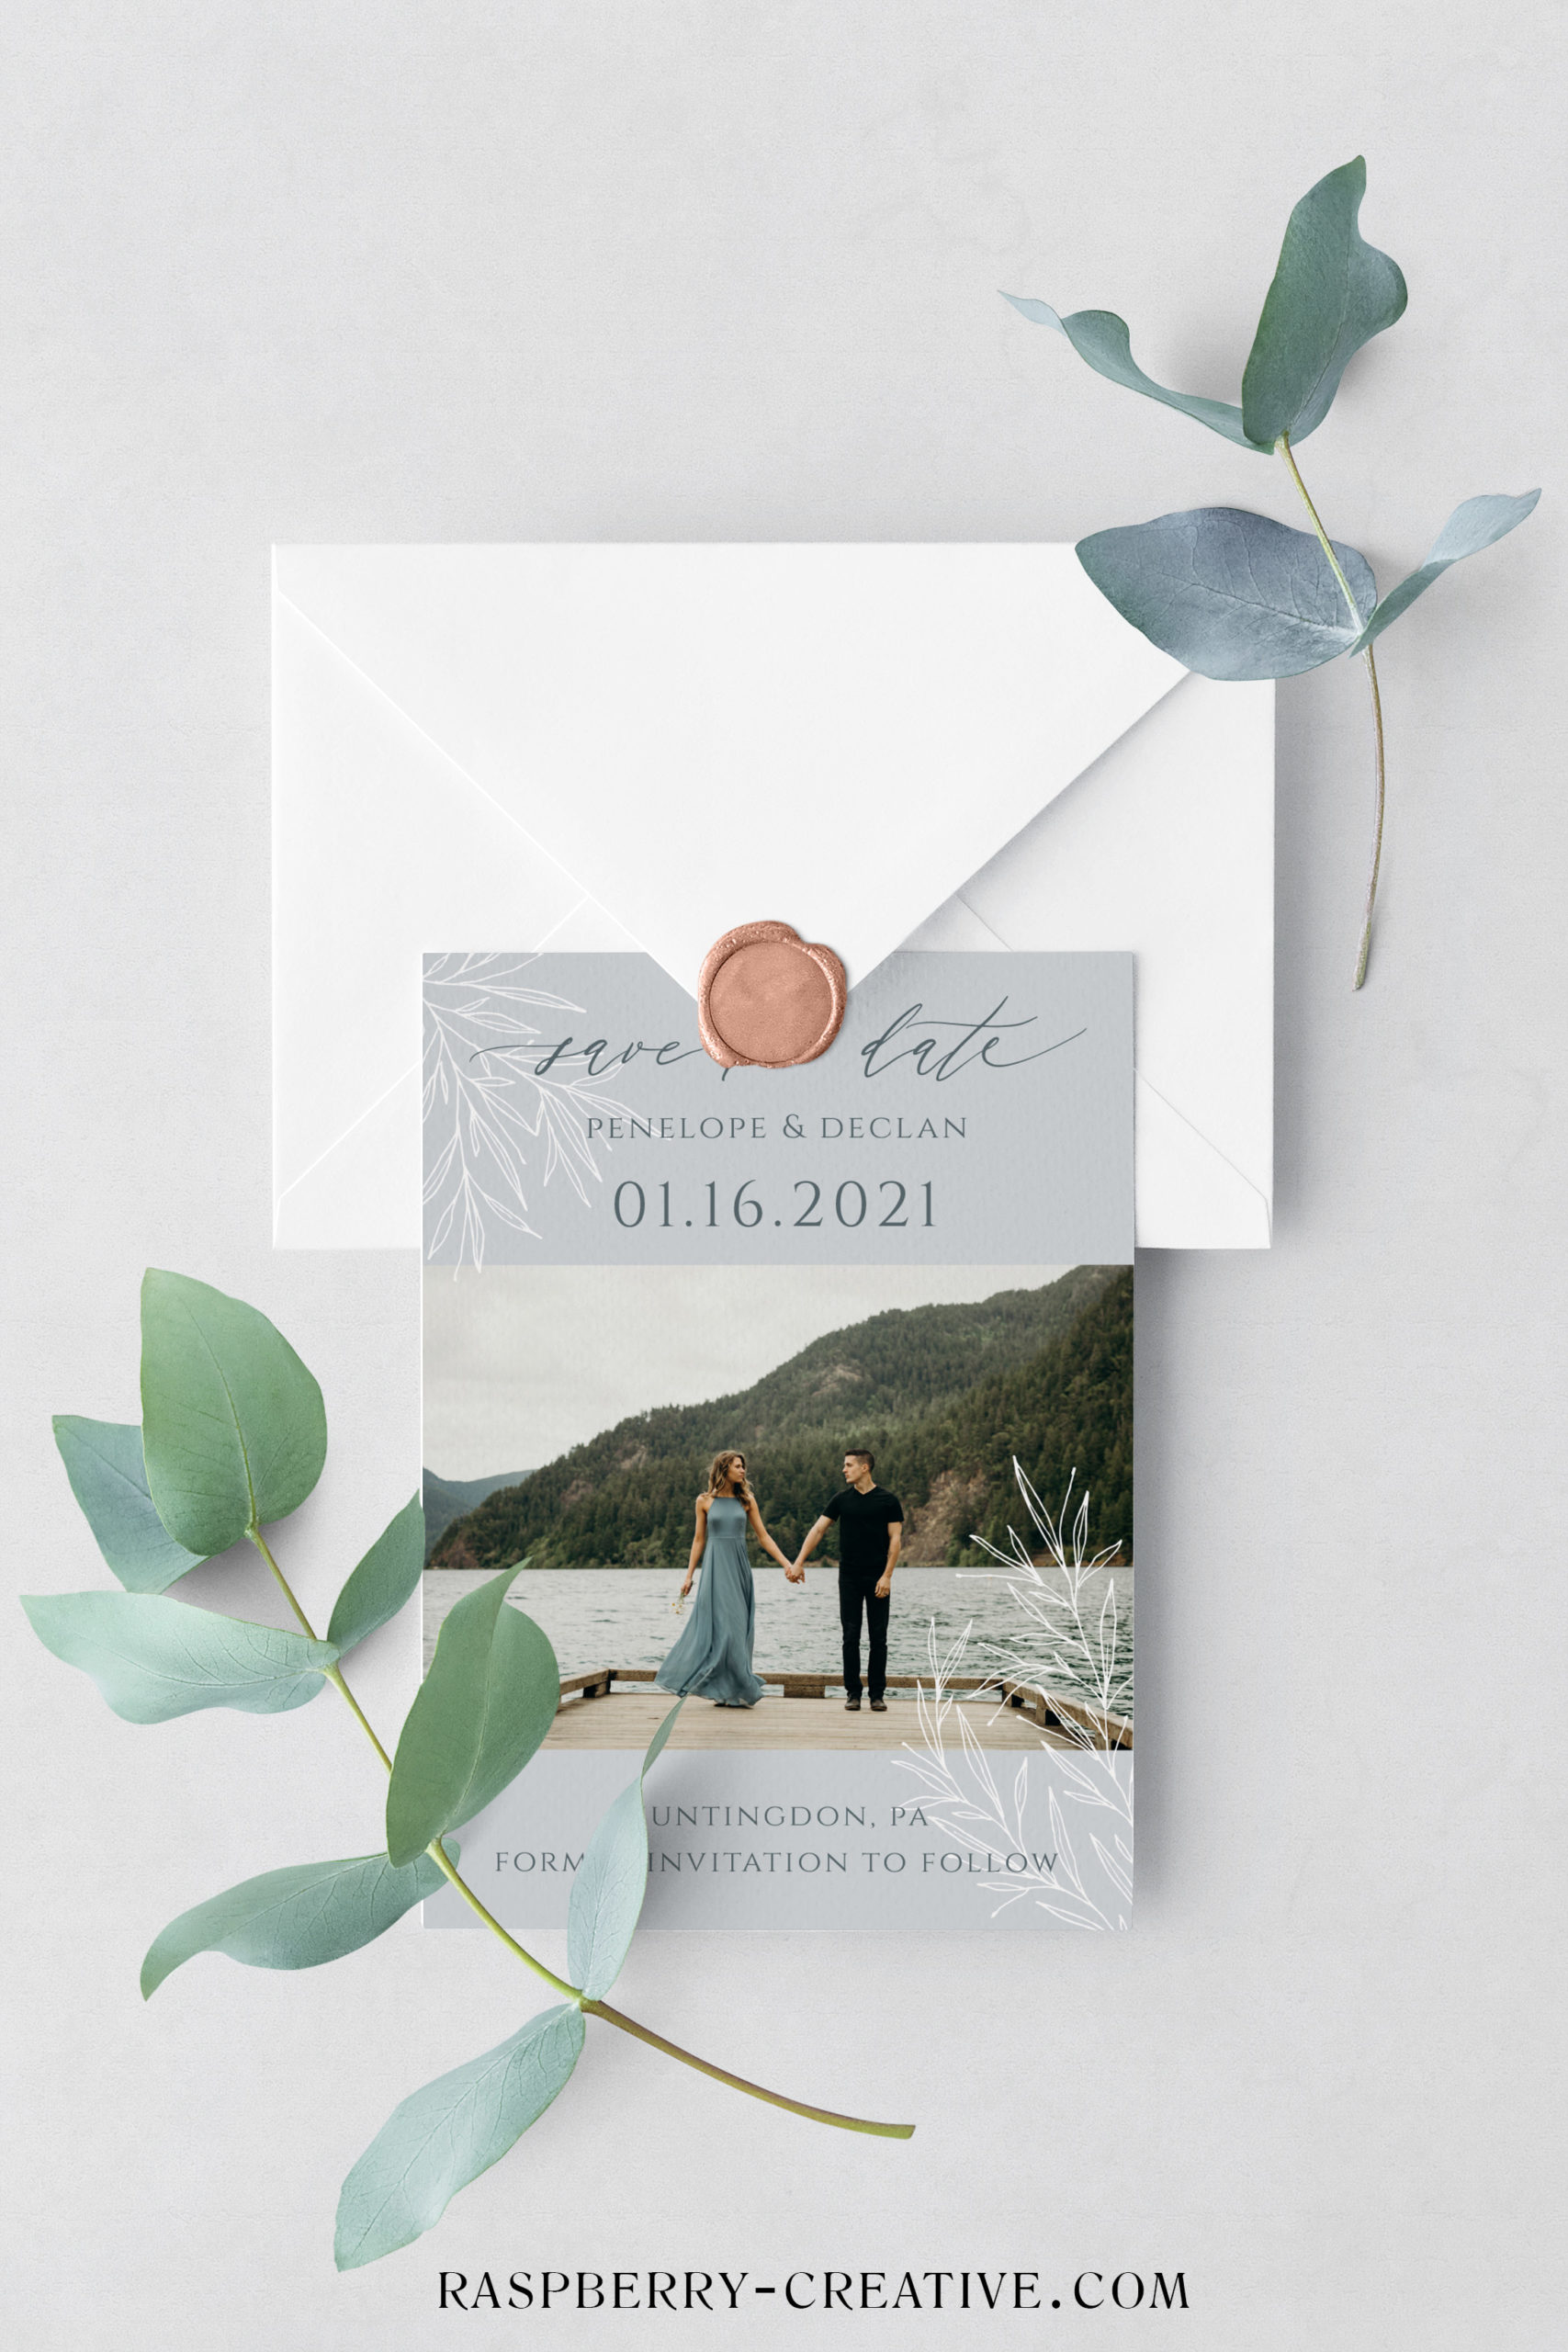 Save the Dates vs. Wedding Invitations